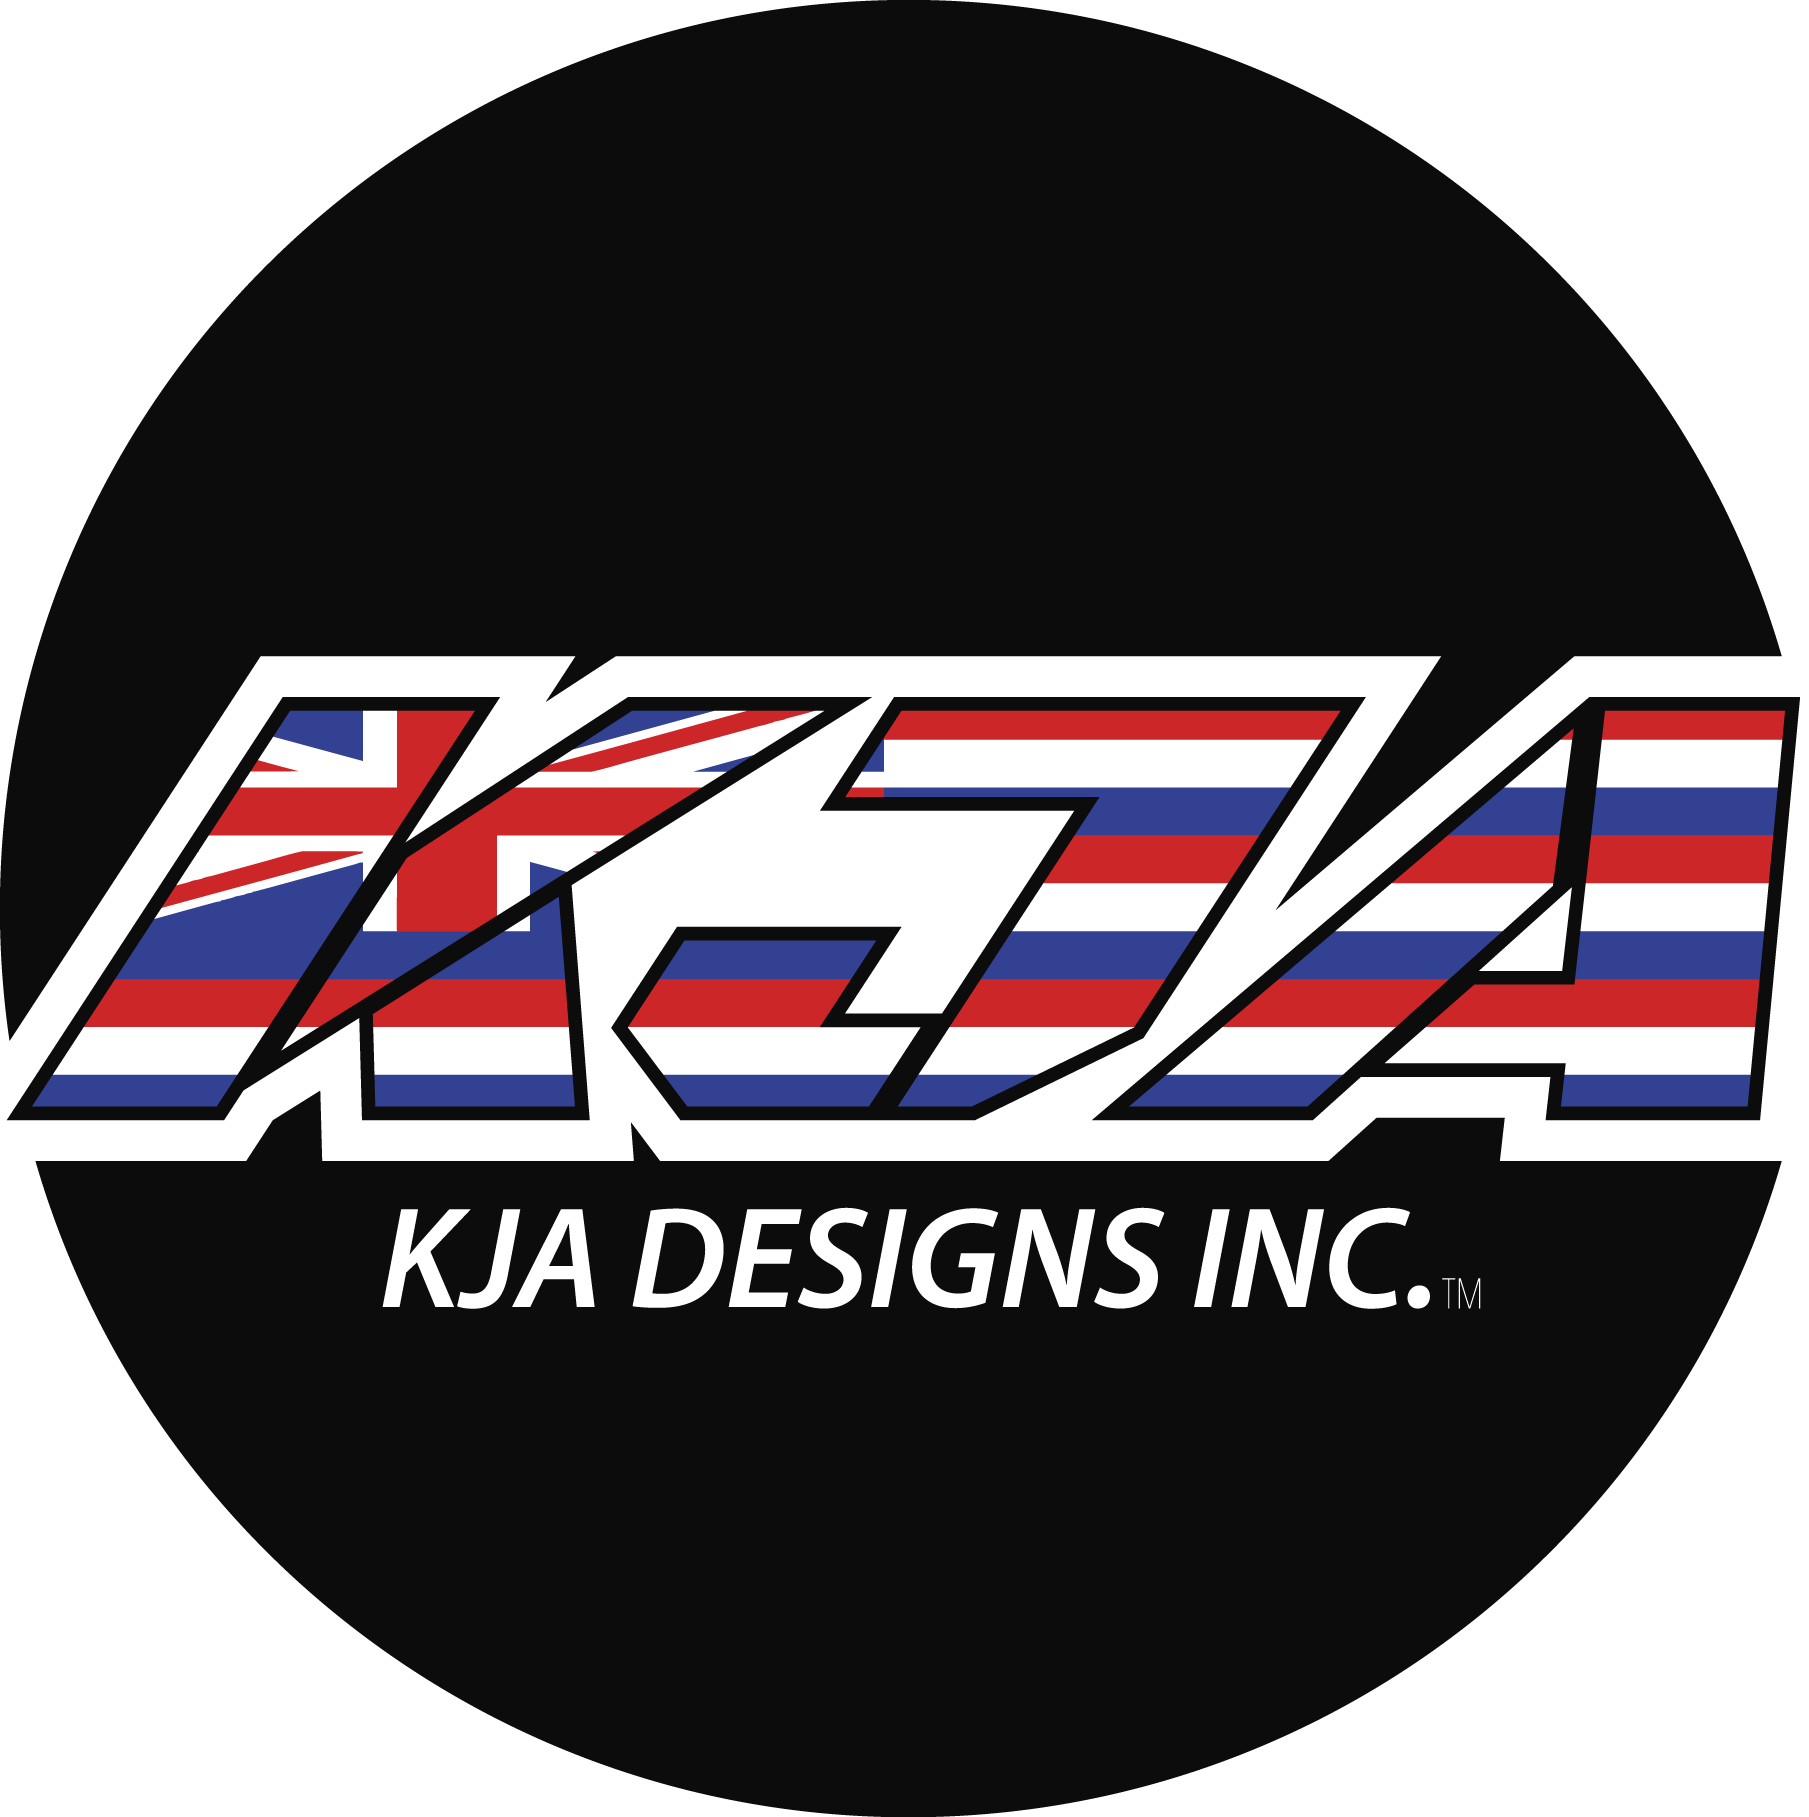 KJA Designs Inc.™ 4B on site